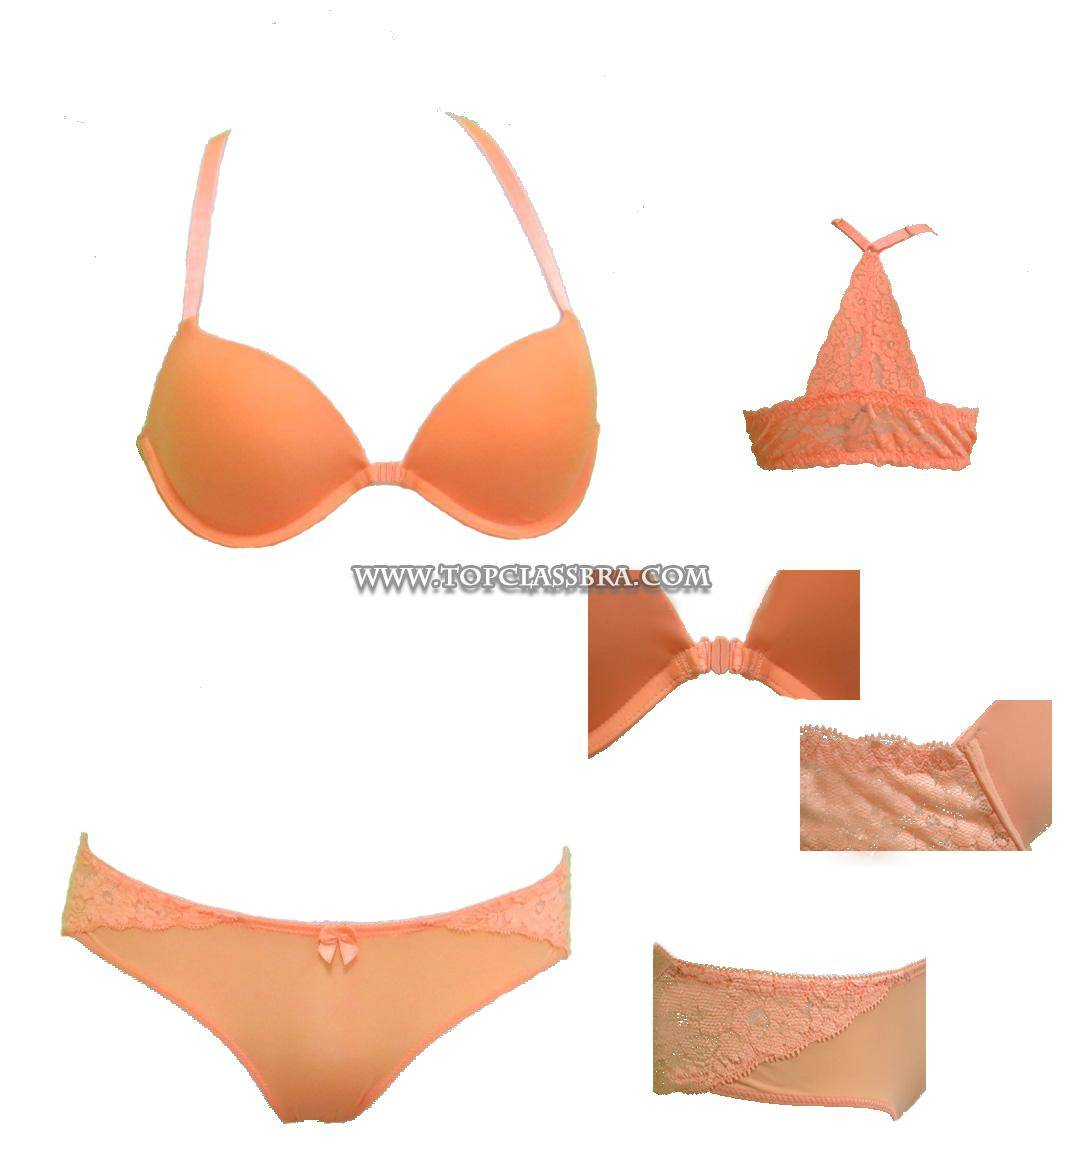 Colorful Front Closure Underwear Set, Racer Back Bra with Elegant Lace Trimming Panty